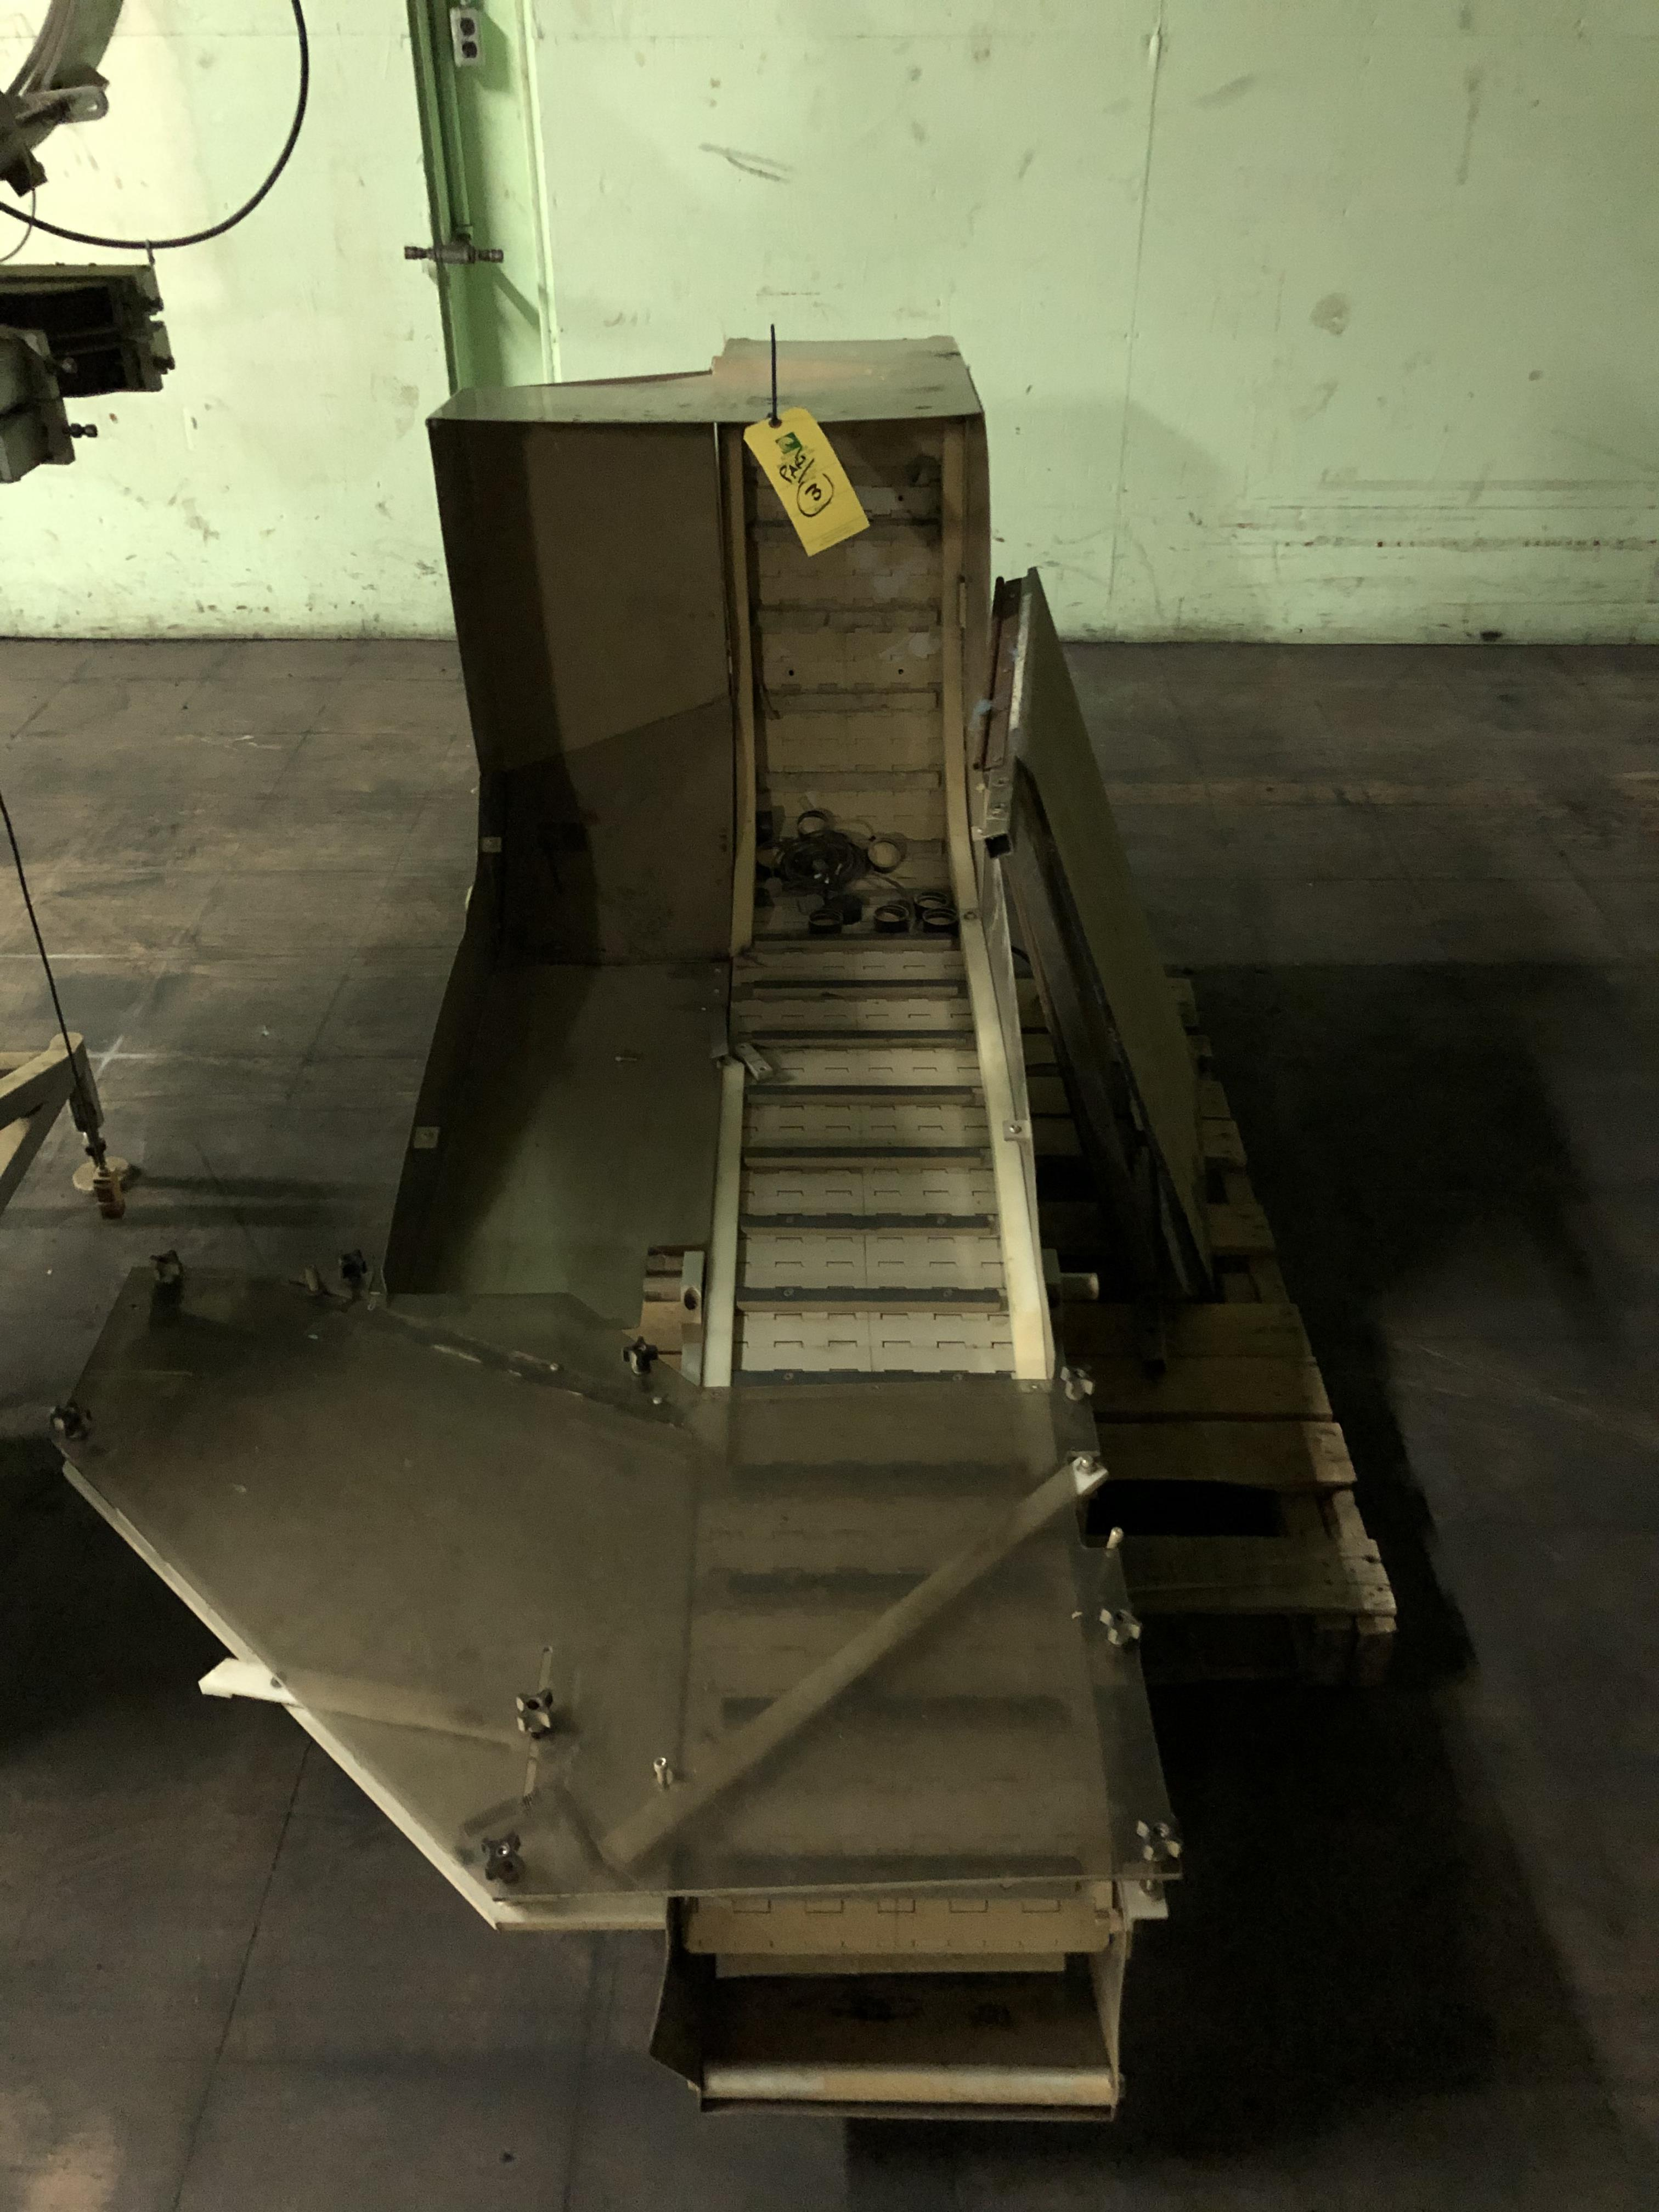 Kalish Model #5010 Supercap Capper, SN 0310, Includes Conveyor Feed, RIGGING FEE $450 - Image 5 of 6